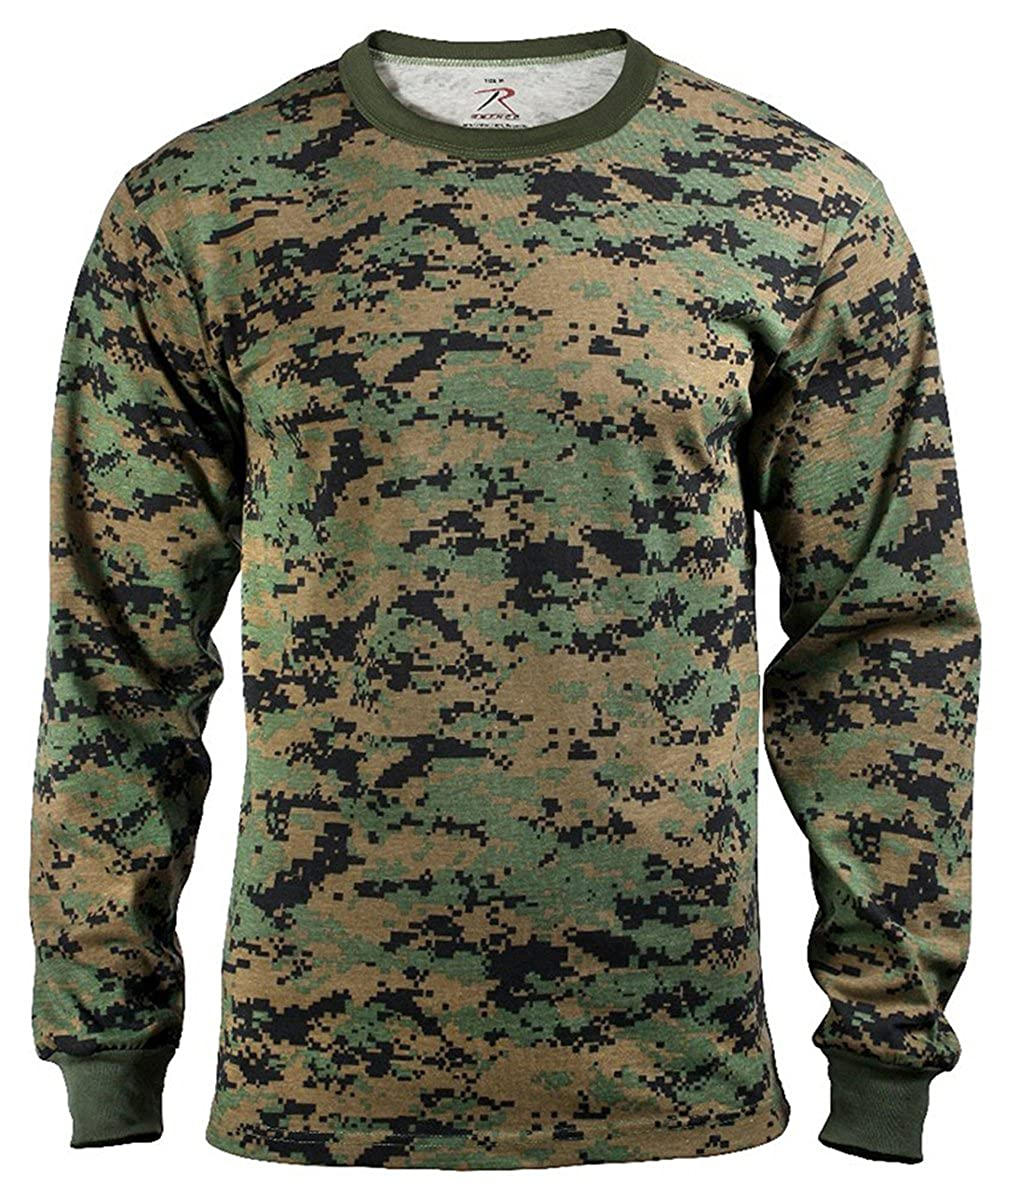 Rothco Long Sleeve T-Shirt, Woodland Digital, 3X 5496